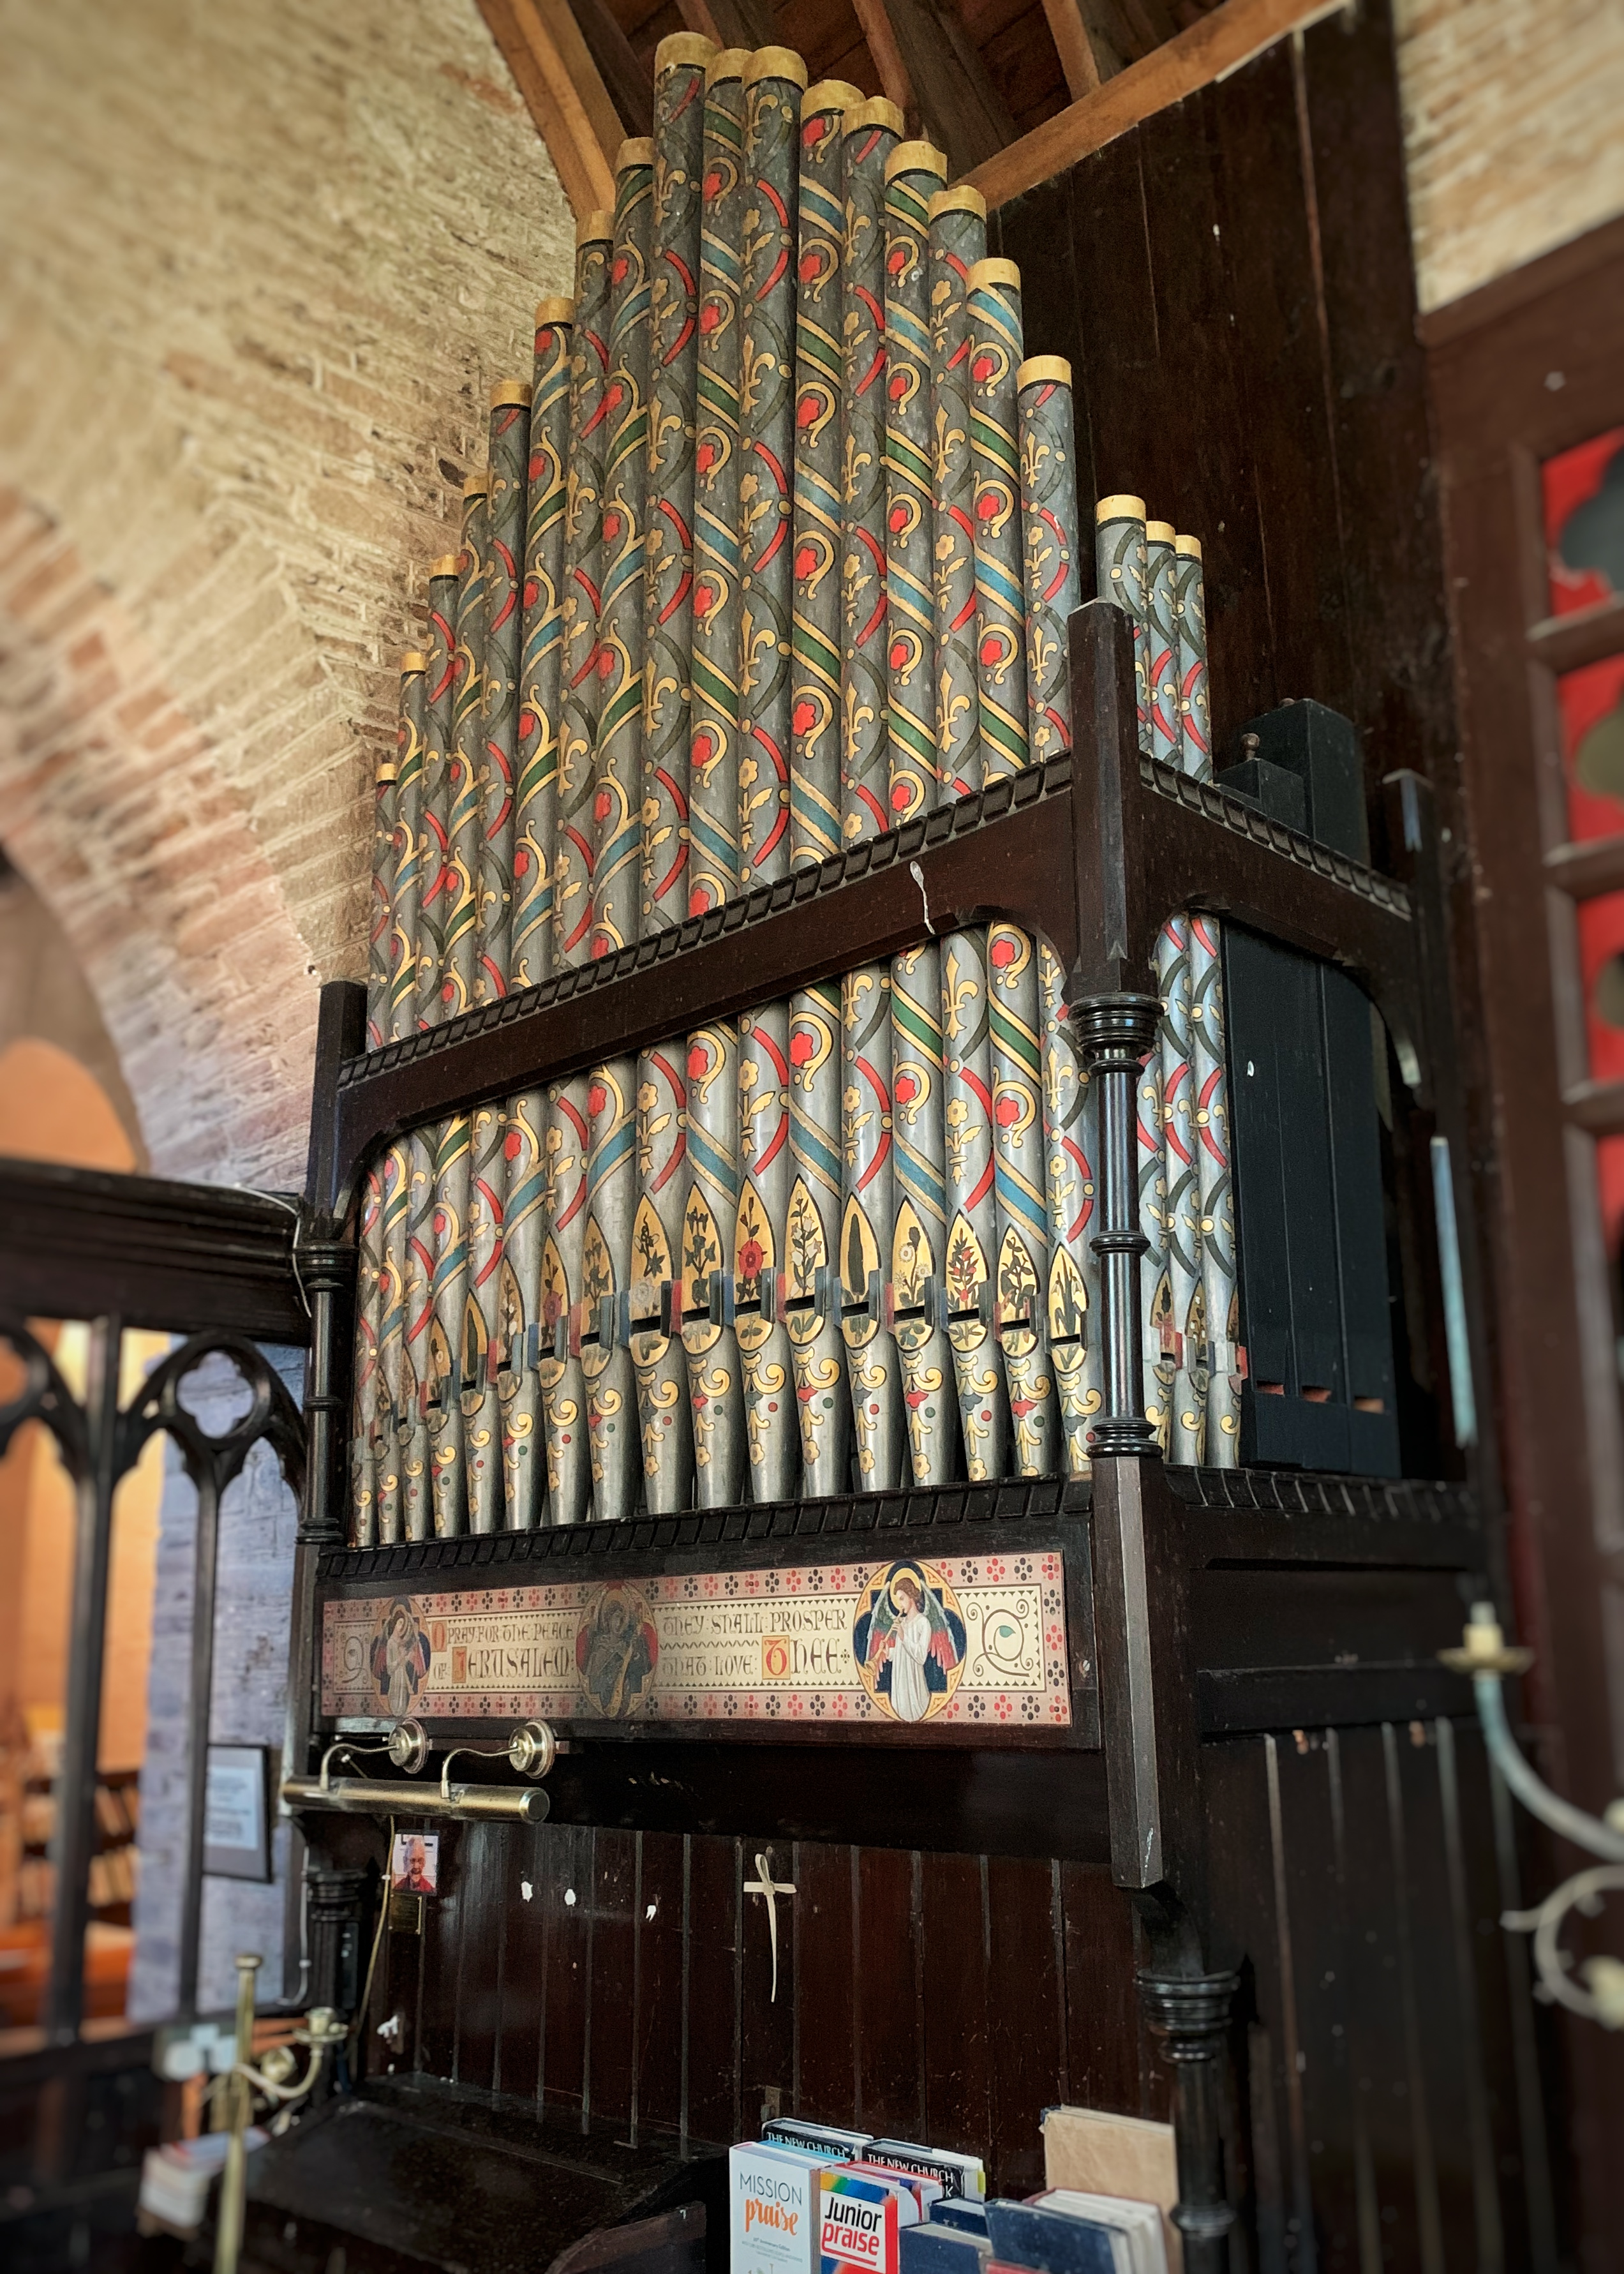 Decorative organ in the Church of All Hallows at Ringmore Village in the South Hams, Devon